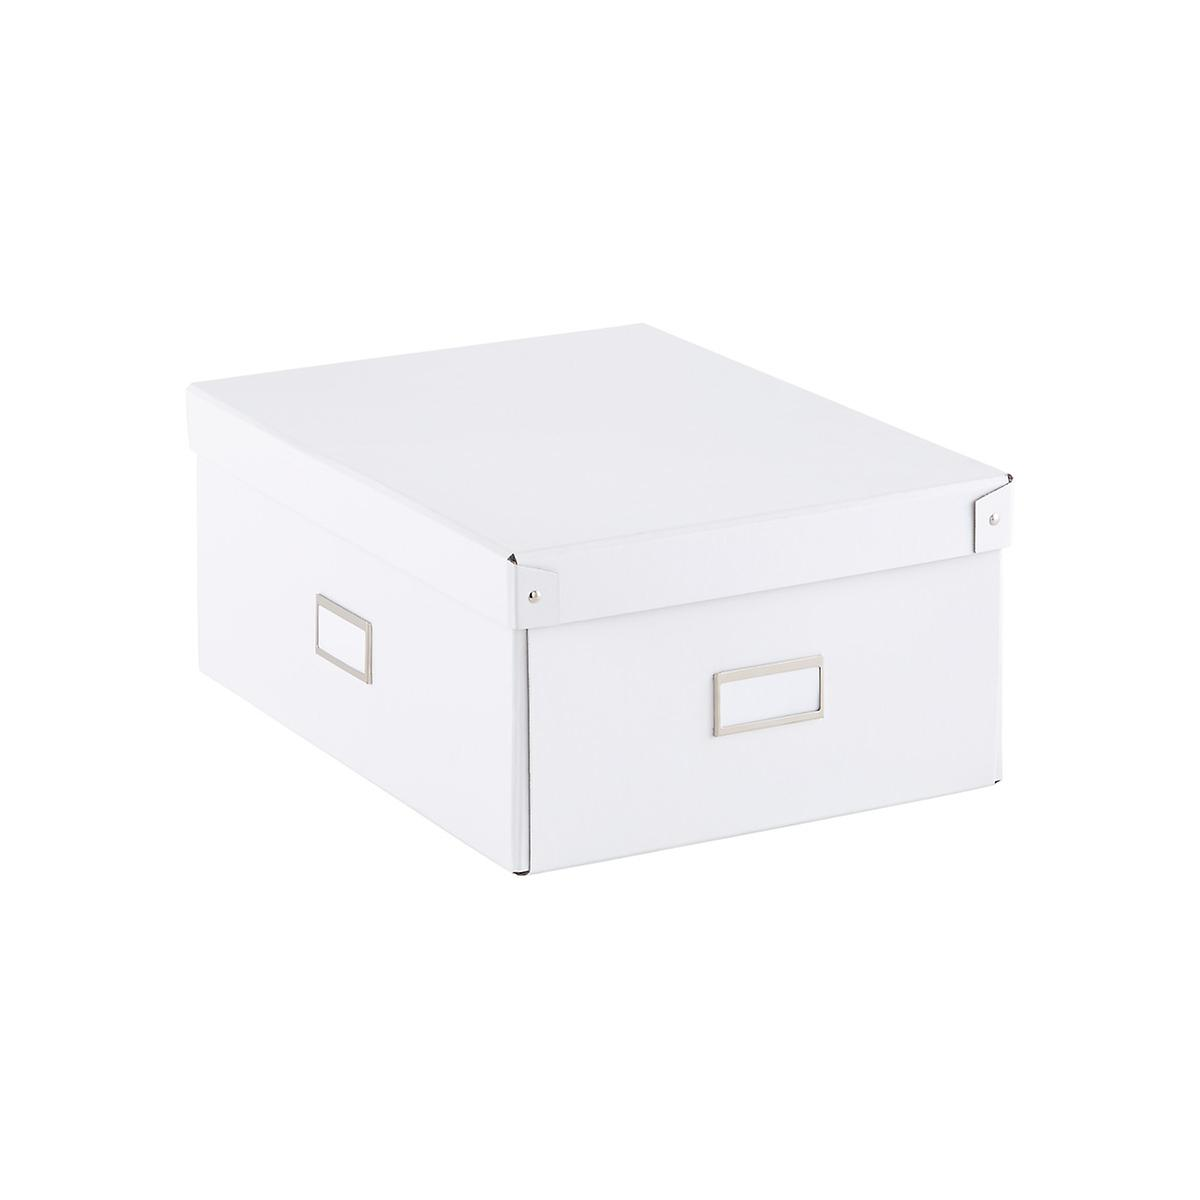 Our White Bigso Storage Boxes The Container Store